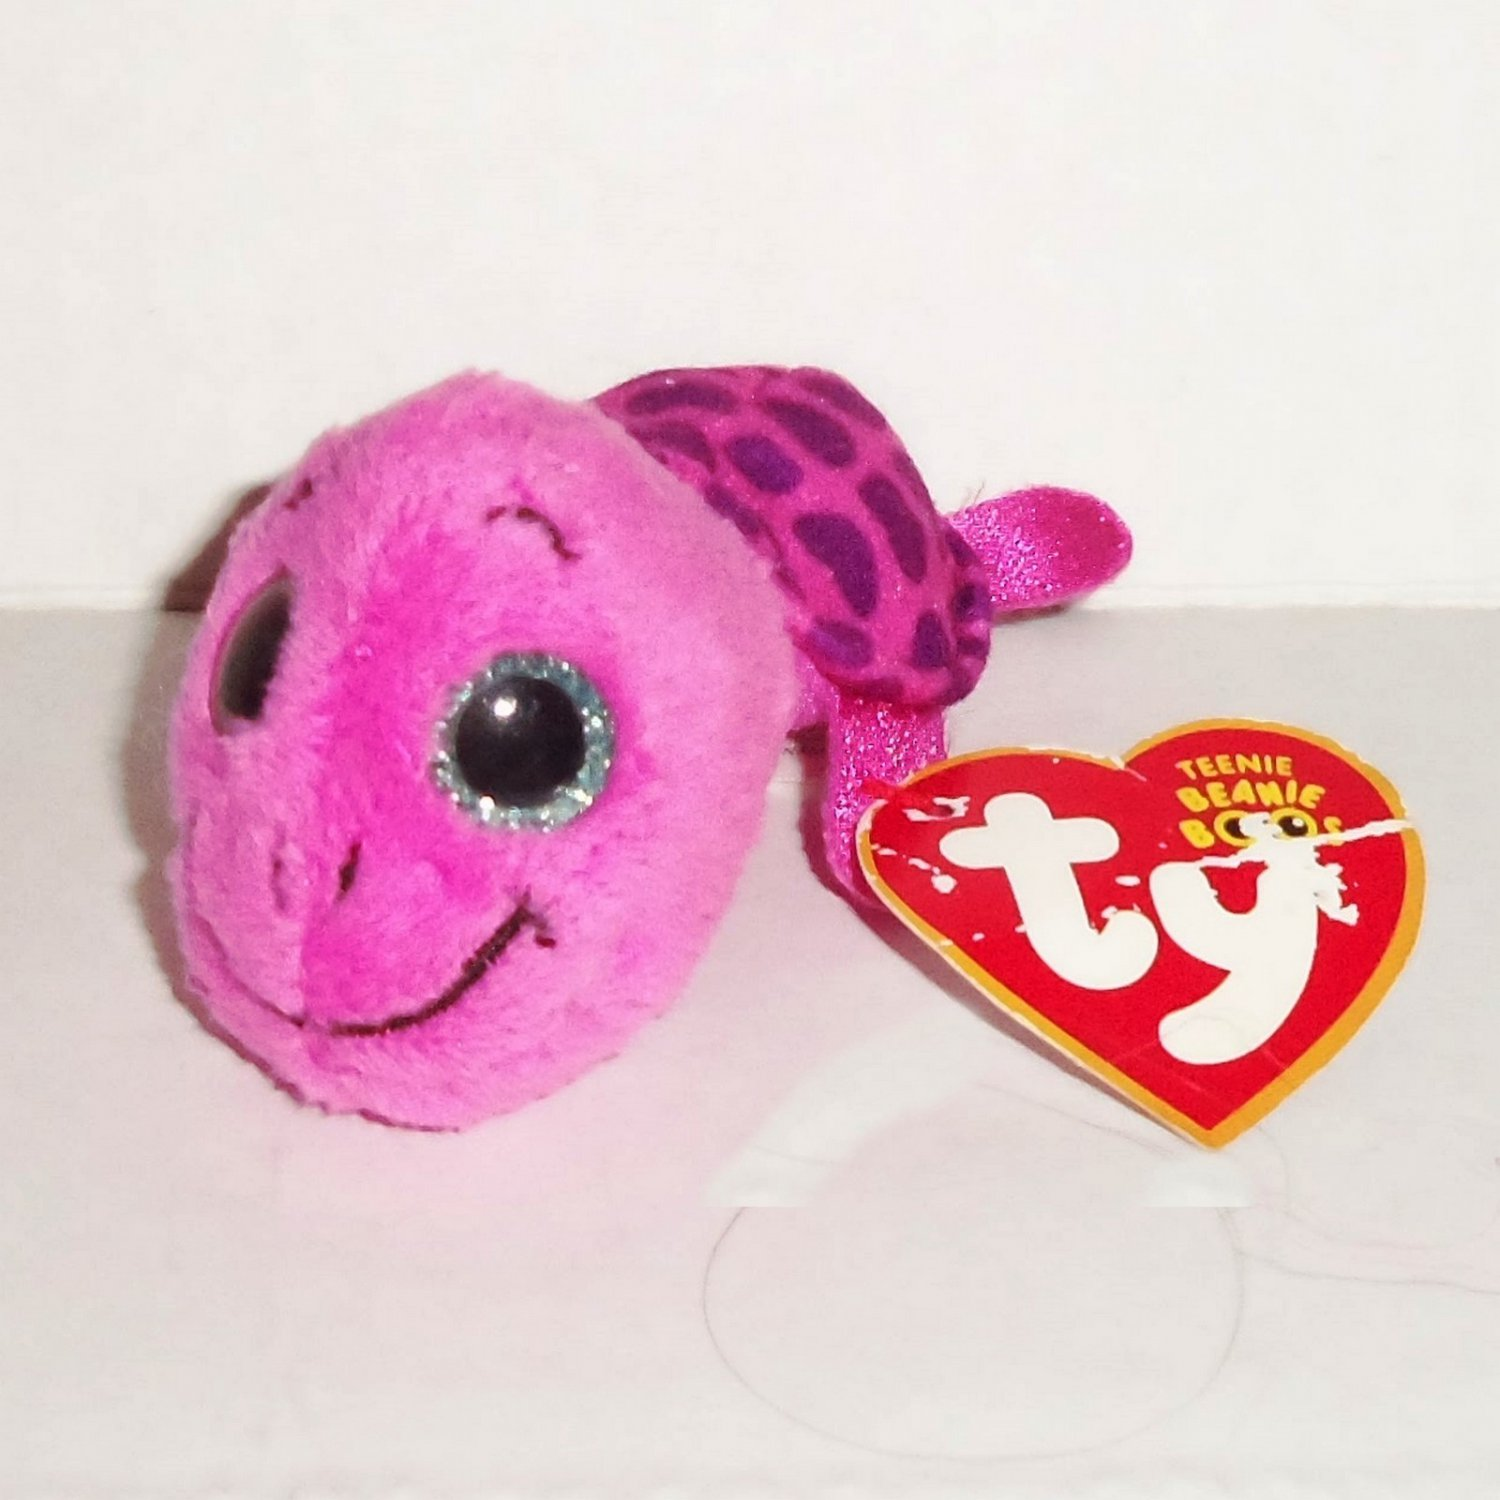 19d9743f268 McDonald s 2017 Ty Teenie Beanie Boos Myrtle Pink Happy Meal Toy Babies  Damaged Swing Tag Loose Used